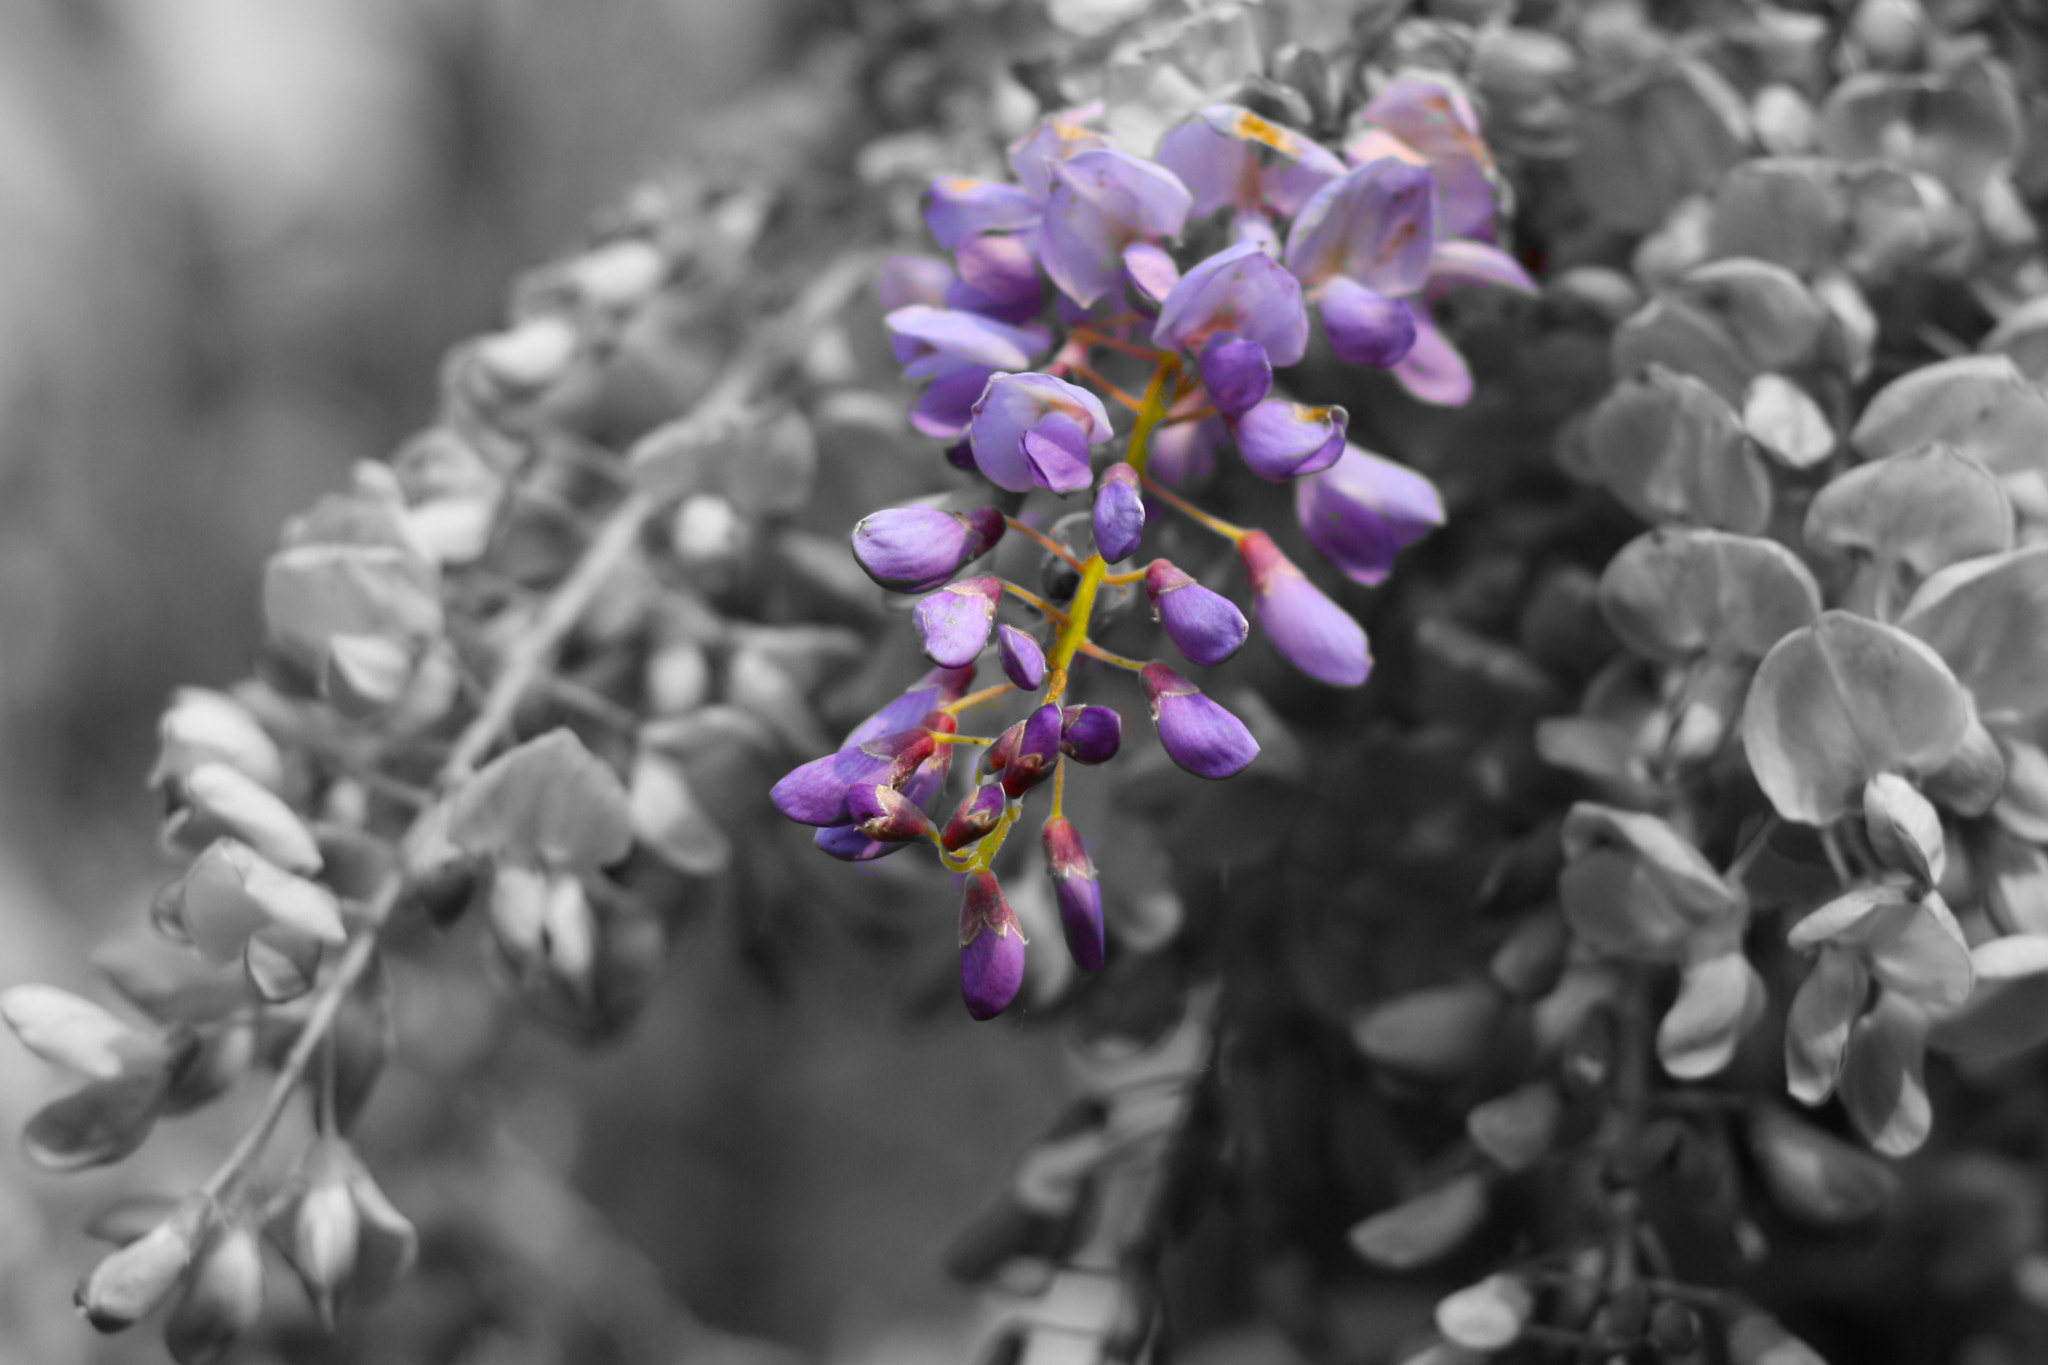 Photograph Spring dressed in violet by Giorgio Carraro on 500px